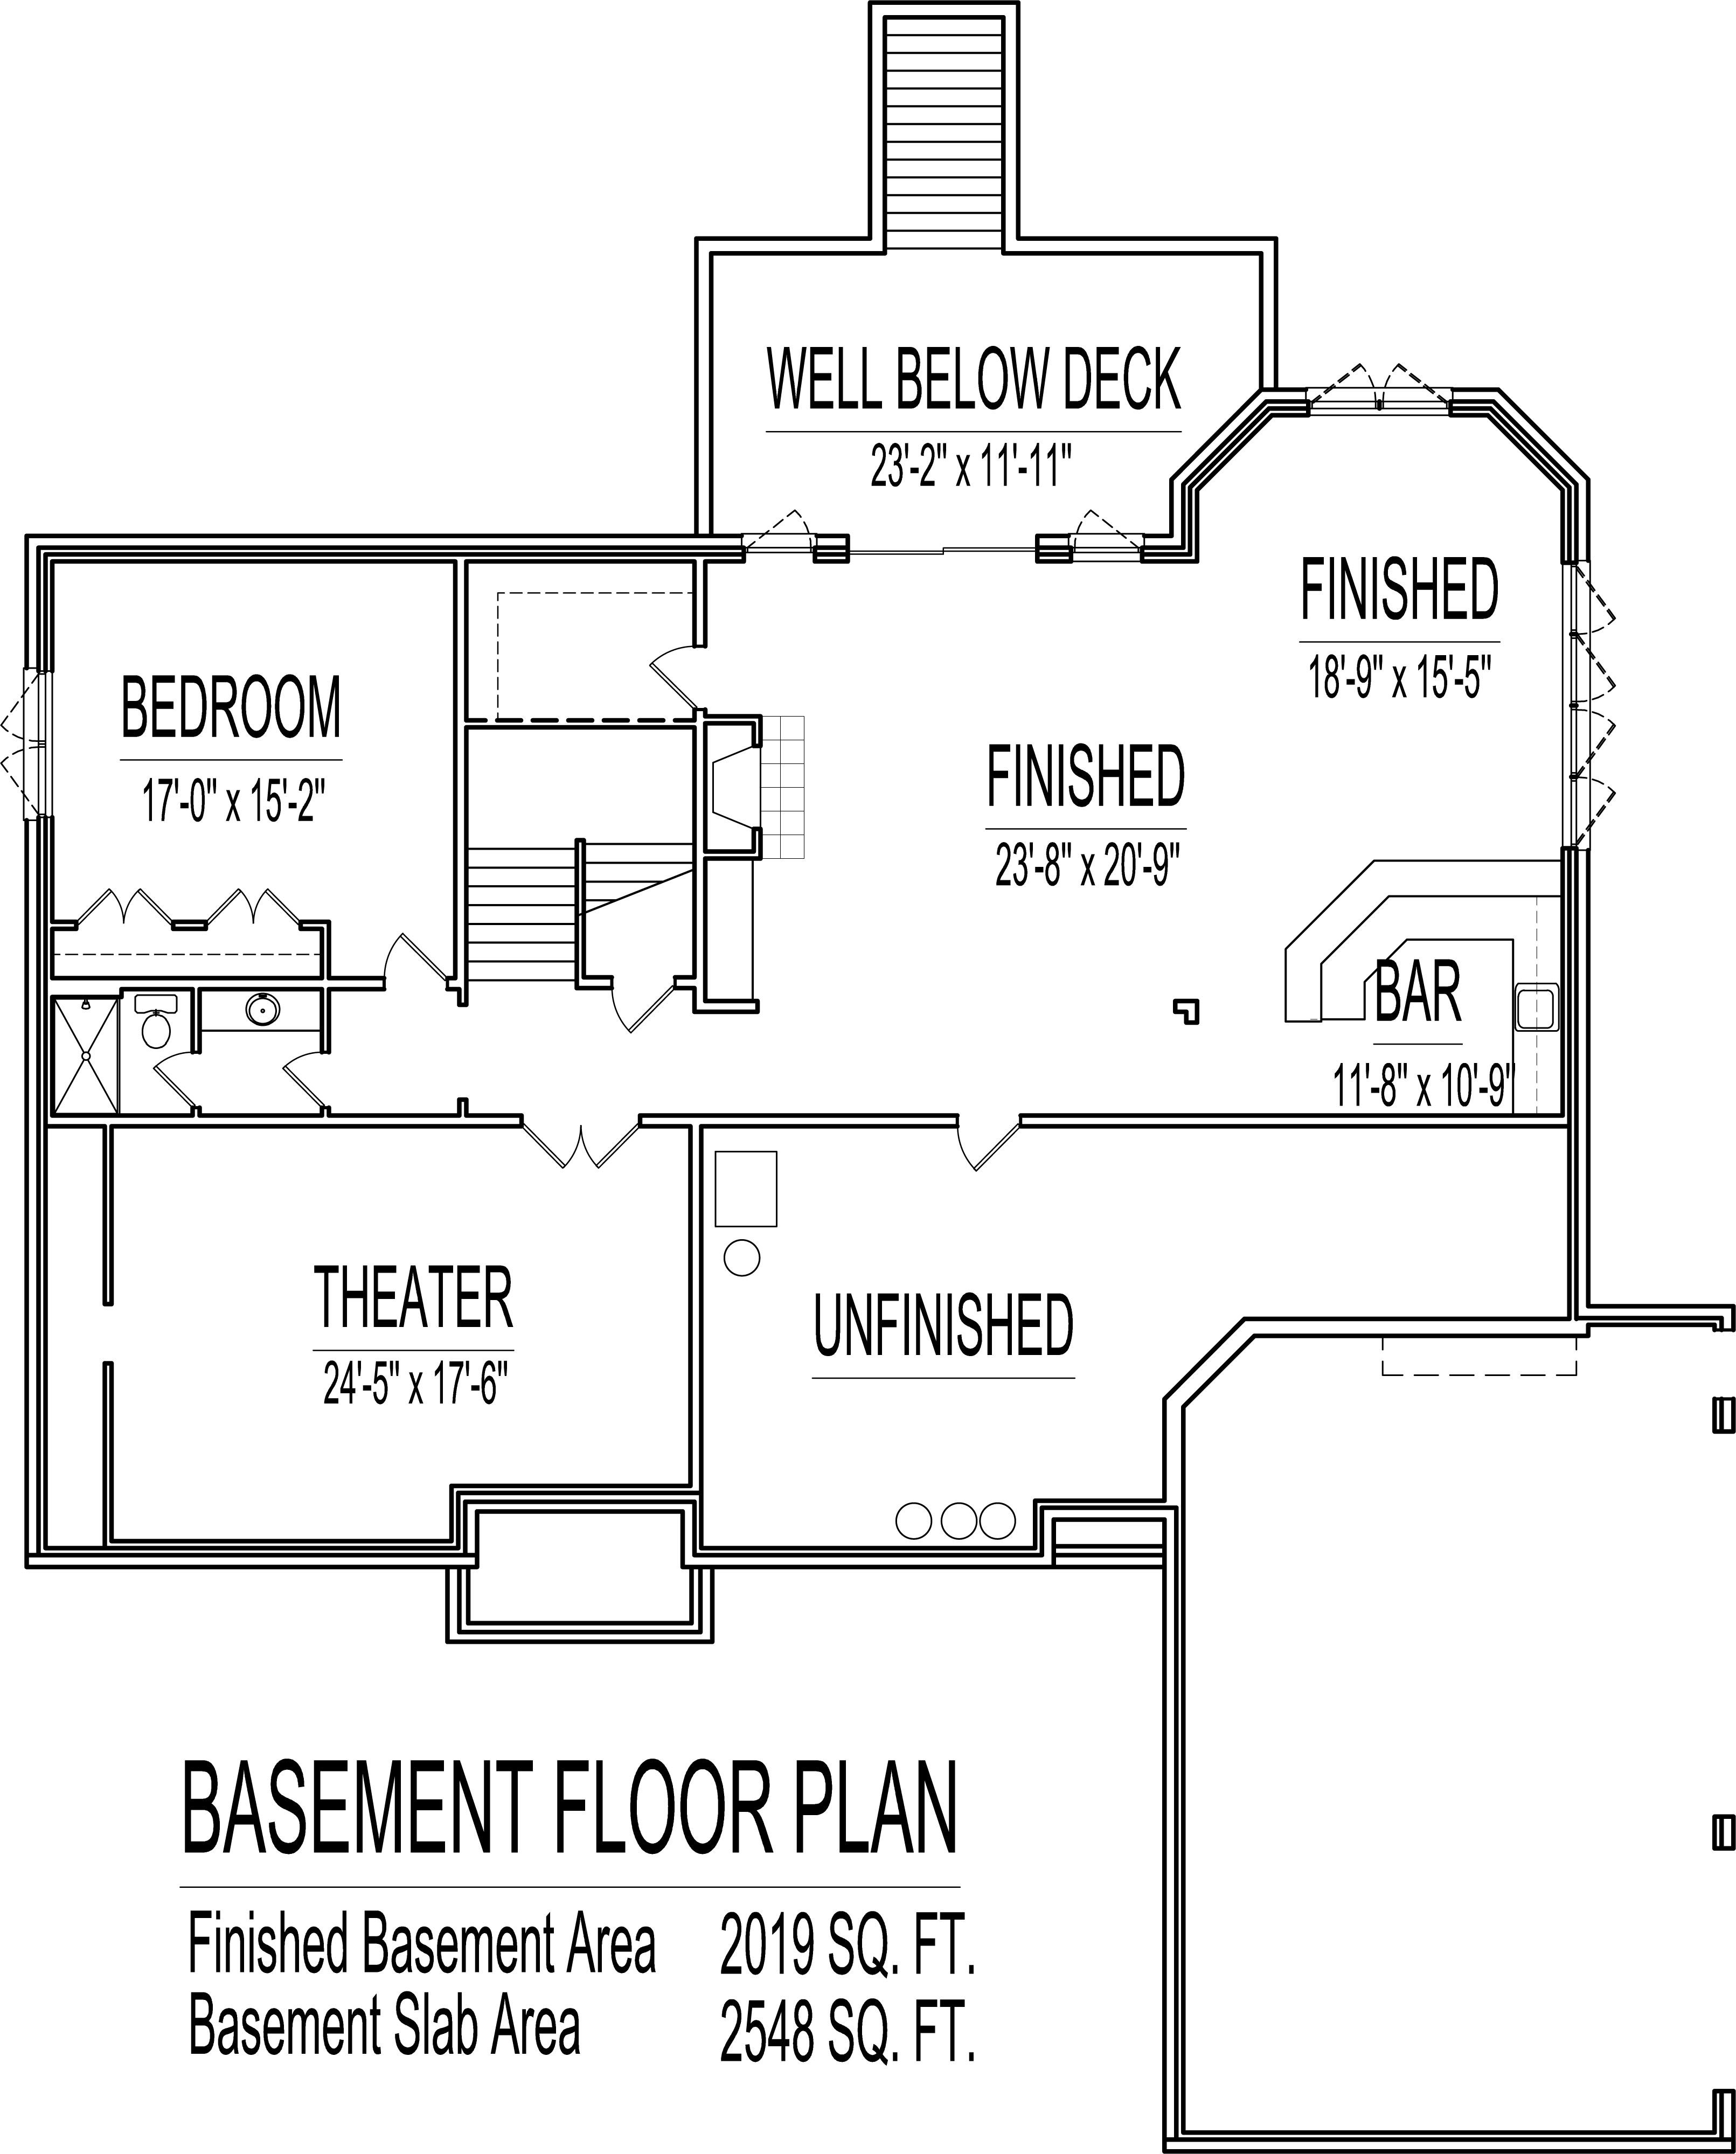 2 Sets Of Stairs 4 Bedroom 2 Story House Plans 5100 Sq Ft Dallas